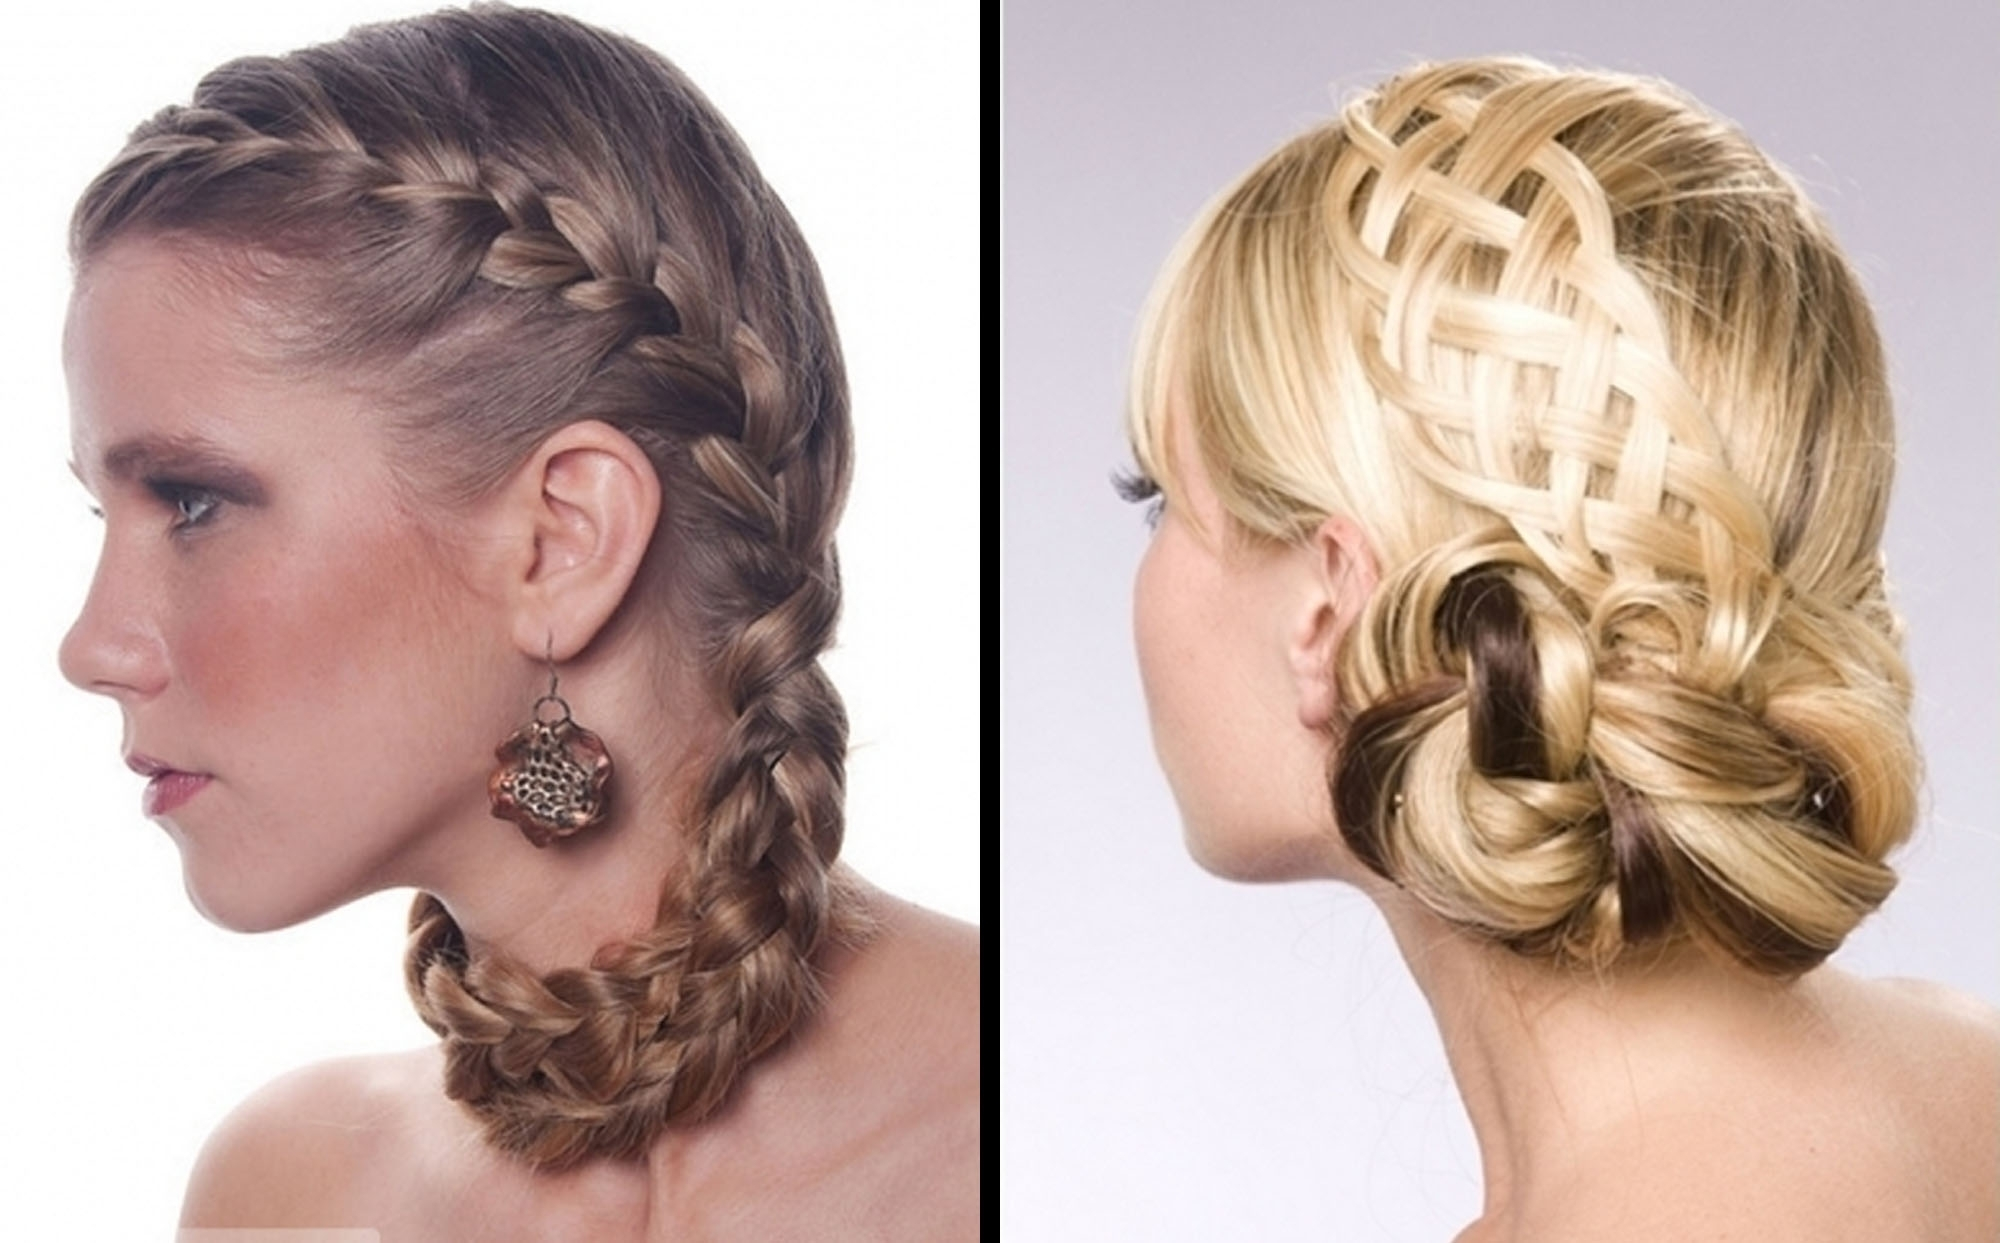 Hair Braided Updo Hairstyles Salon Formal | Medium Hair Styles Ideas Intended For Cool Updo Hairstyles (View 7 of 15)